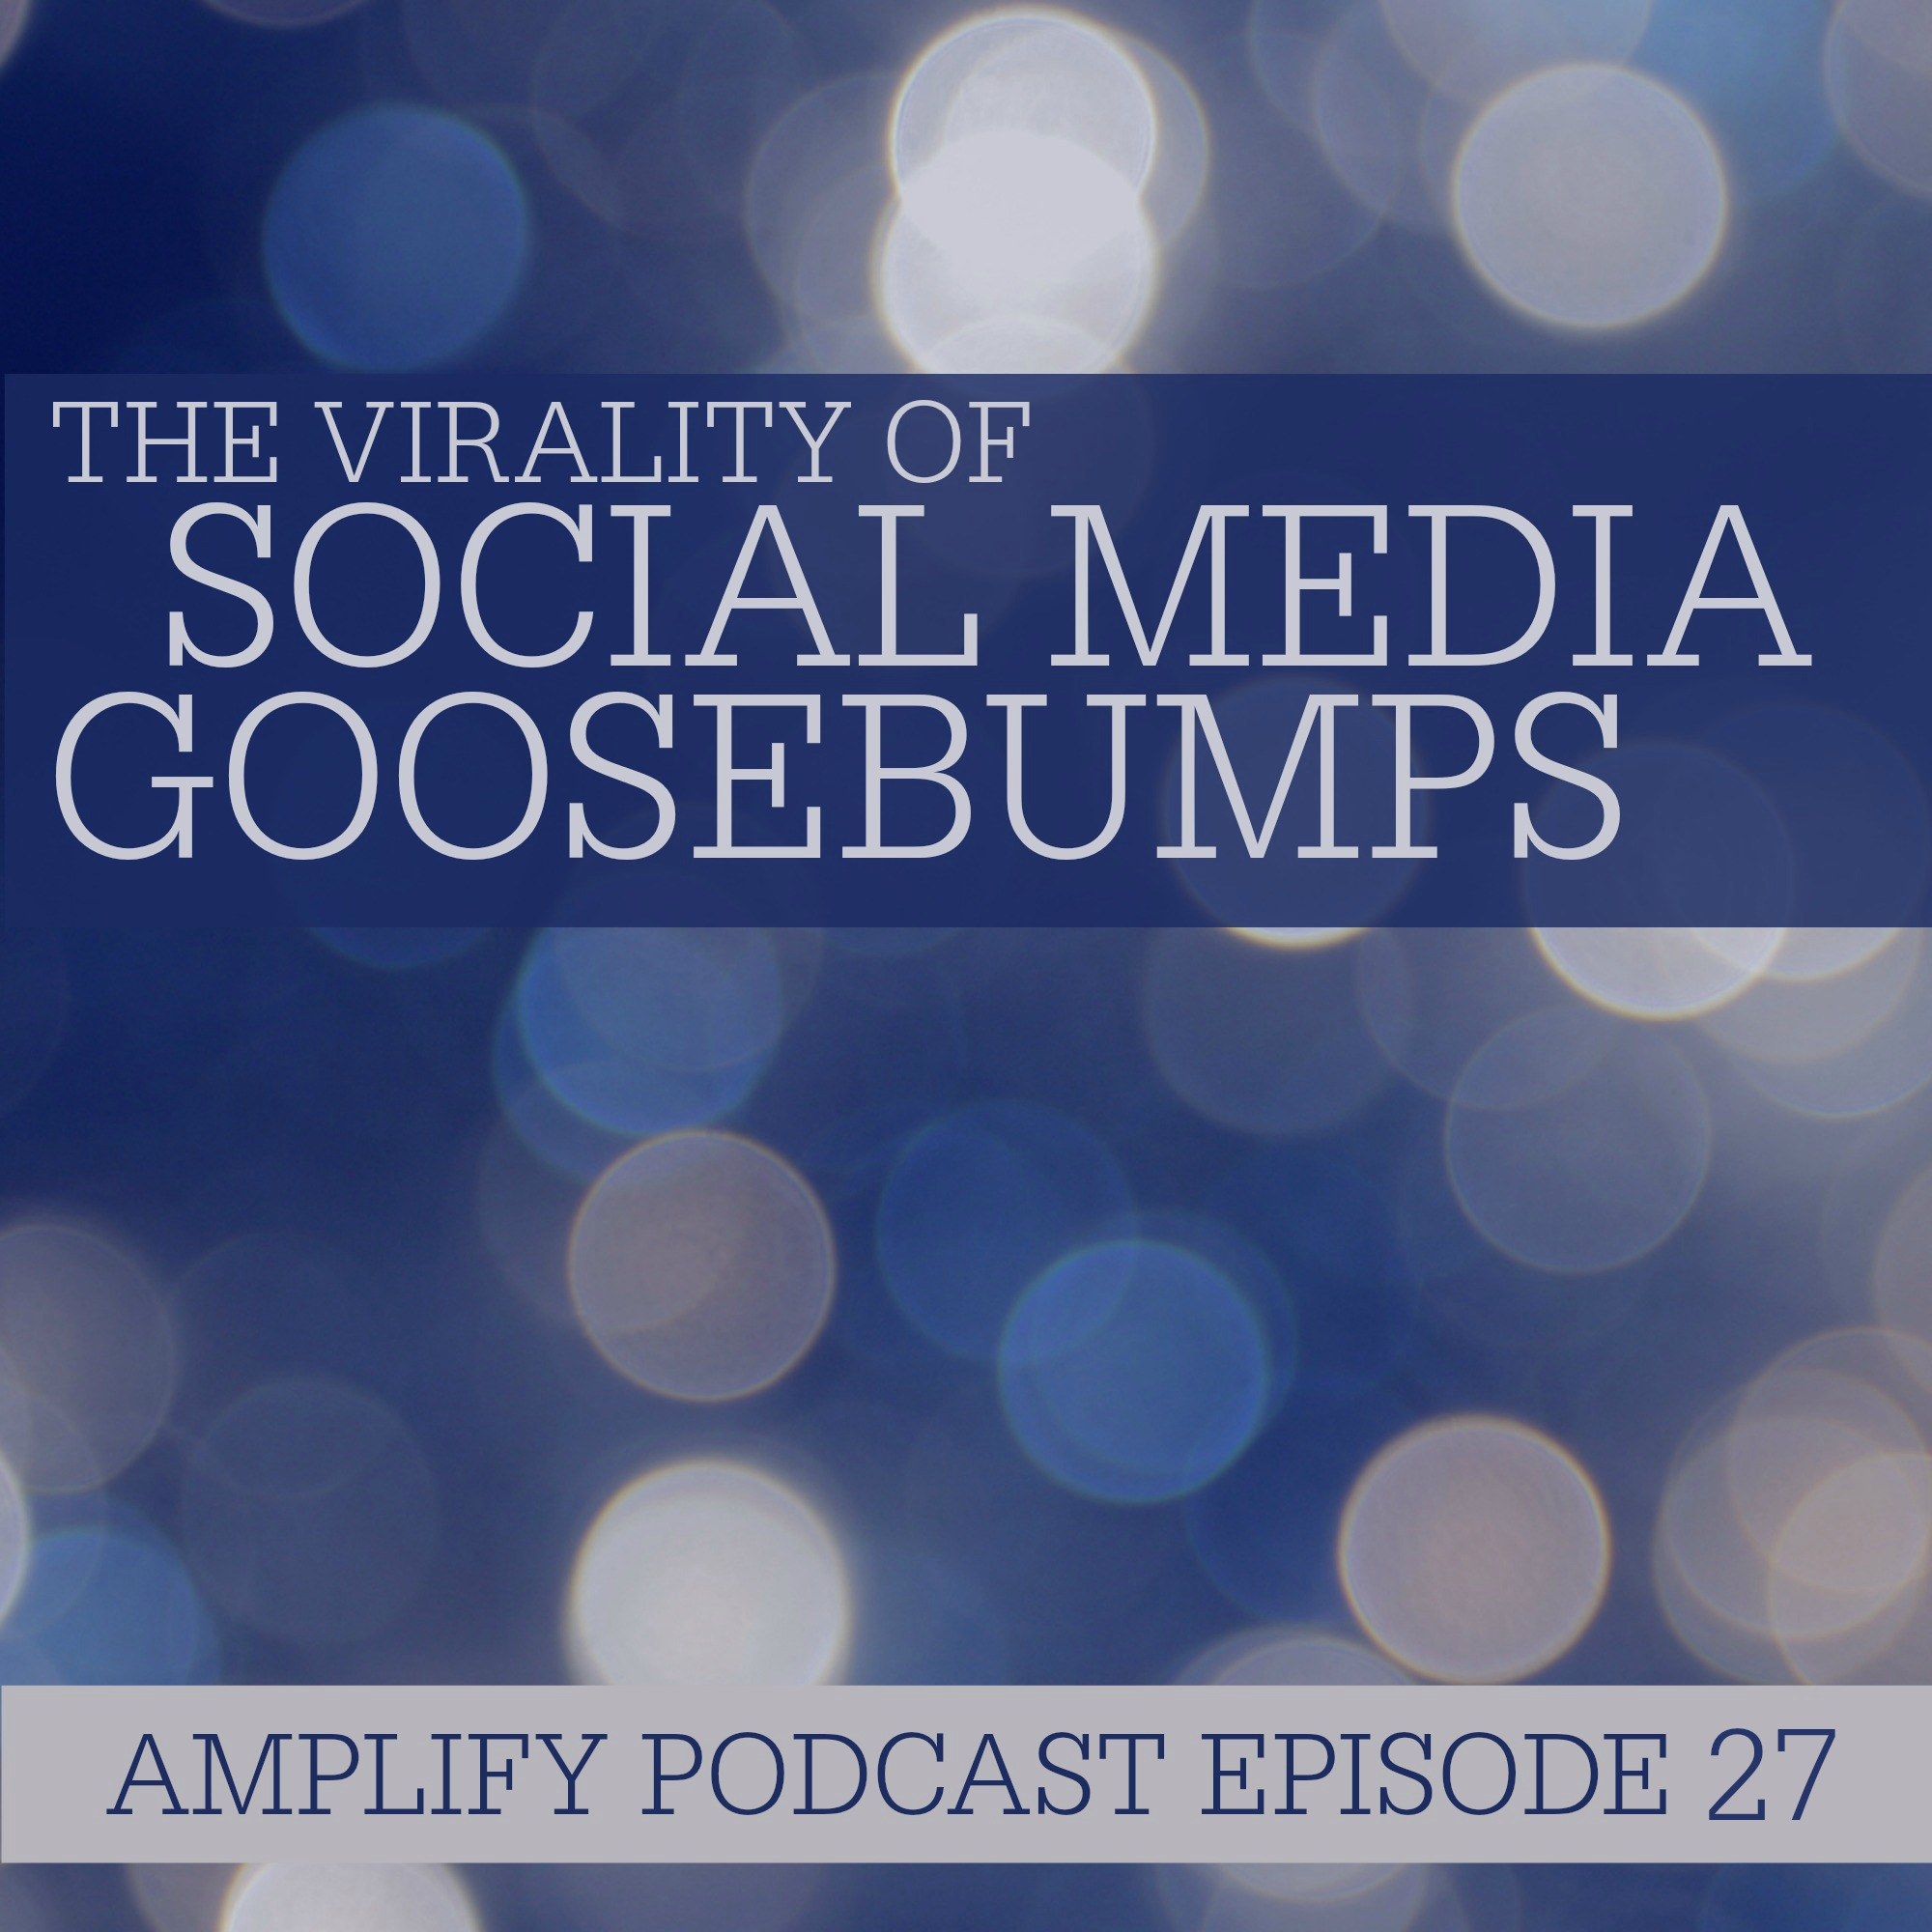 Virality of Social Media Goosebumps